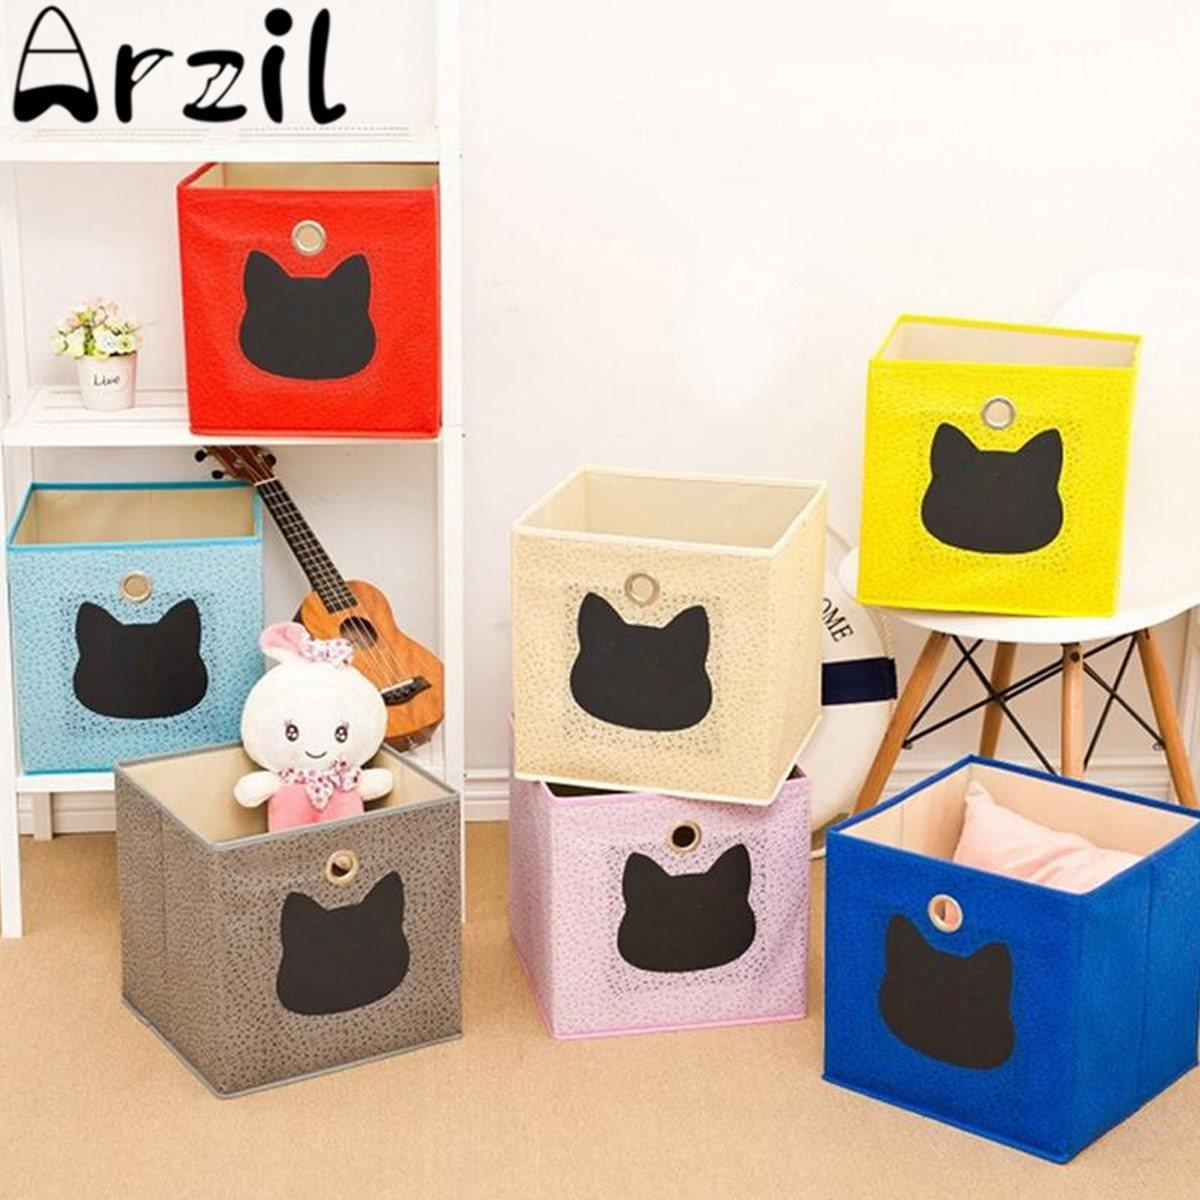 Genial 2018 Collapsible Non Woven Kids Toys Storage Boxes Childrens Toys Storage  Box Bin Home Playroom Organizer Sundries Holder From Donaold, $24.35 |  Dhgate.Com